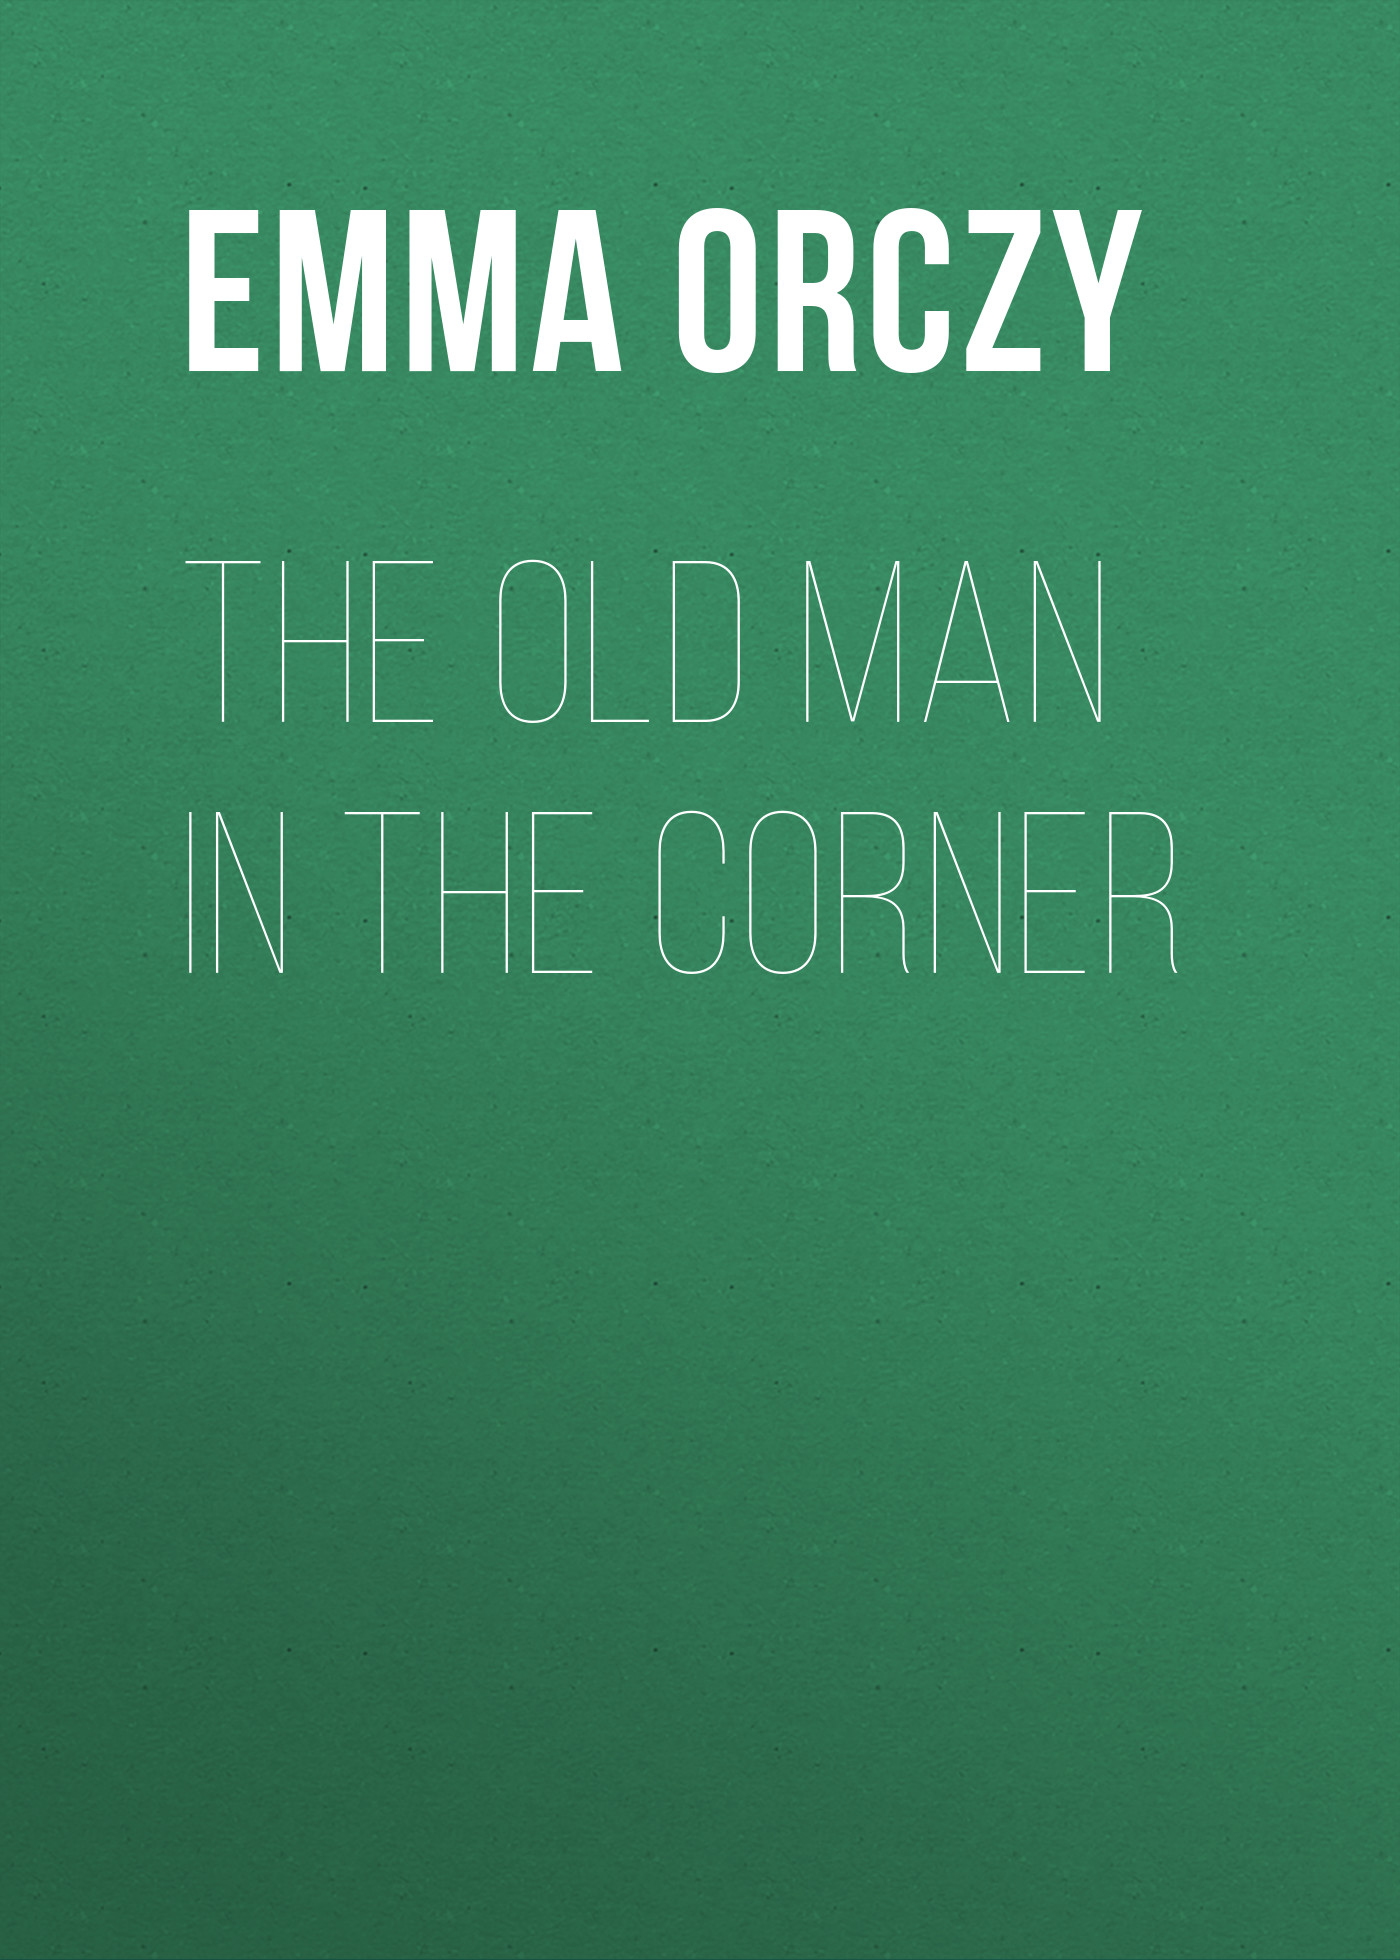 Emma Orczy The Old Man in the Corner emma orczy his majesty s well beloved